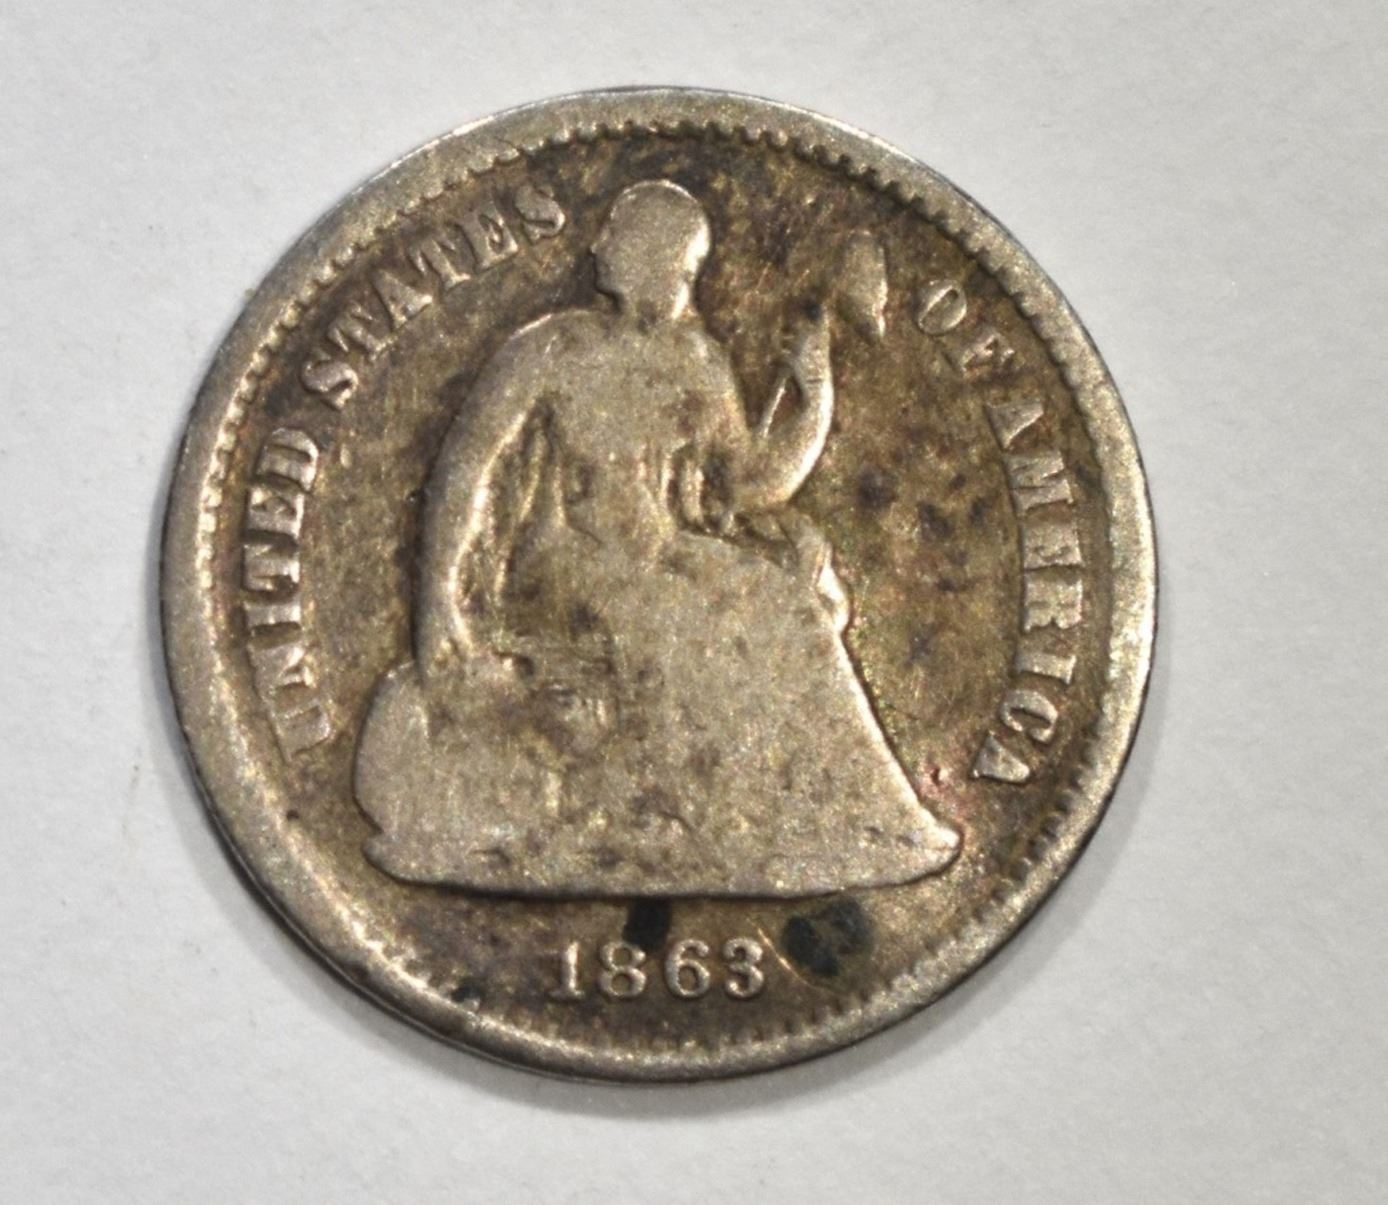 Image 1 1863 S Seated Half Dime Vg